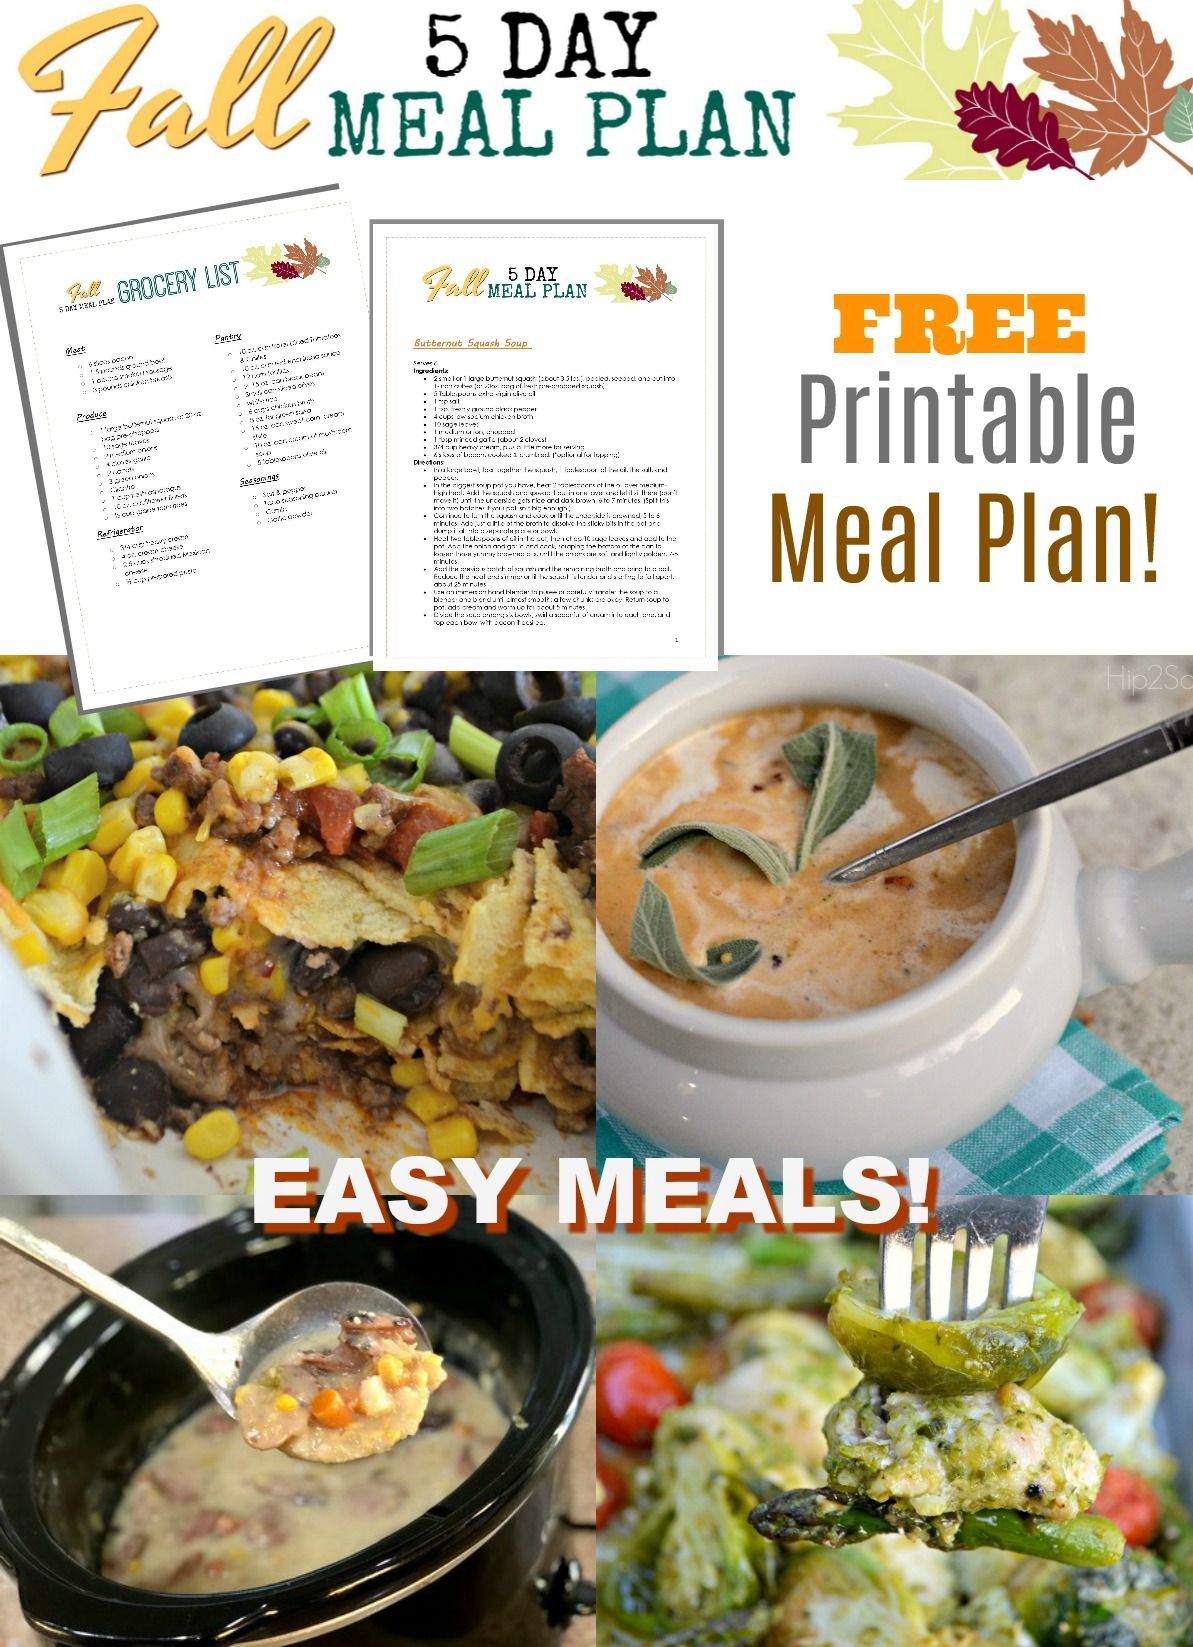 Get Cozy This Fall With Our Free Printable 5 Day Meal Plan